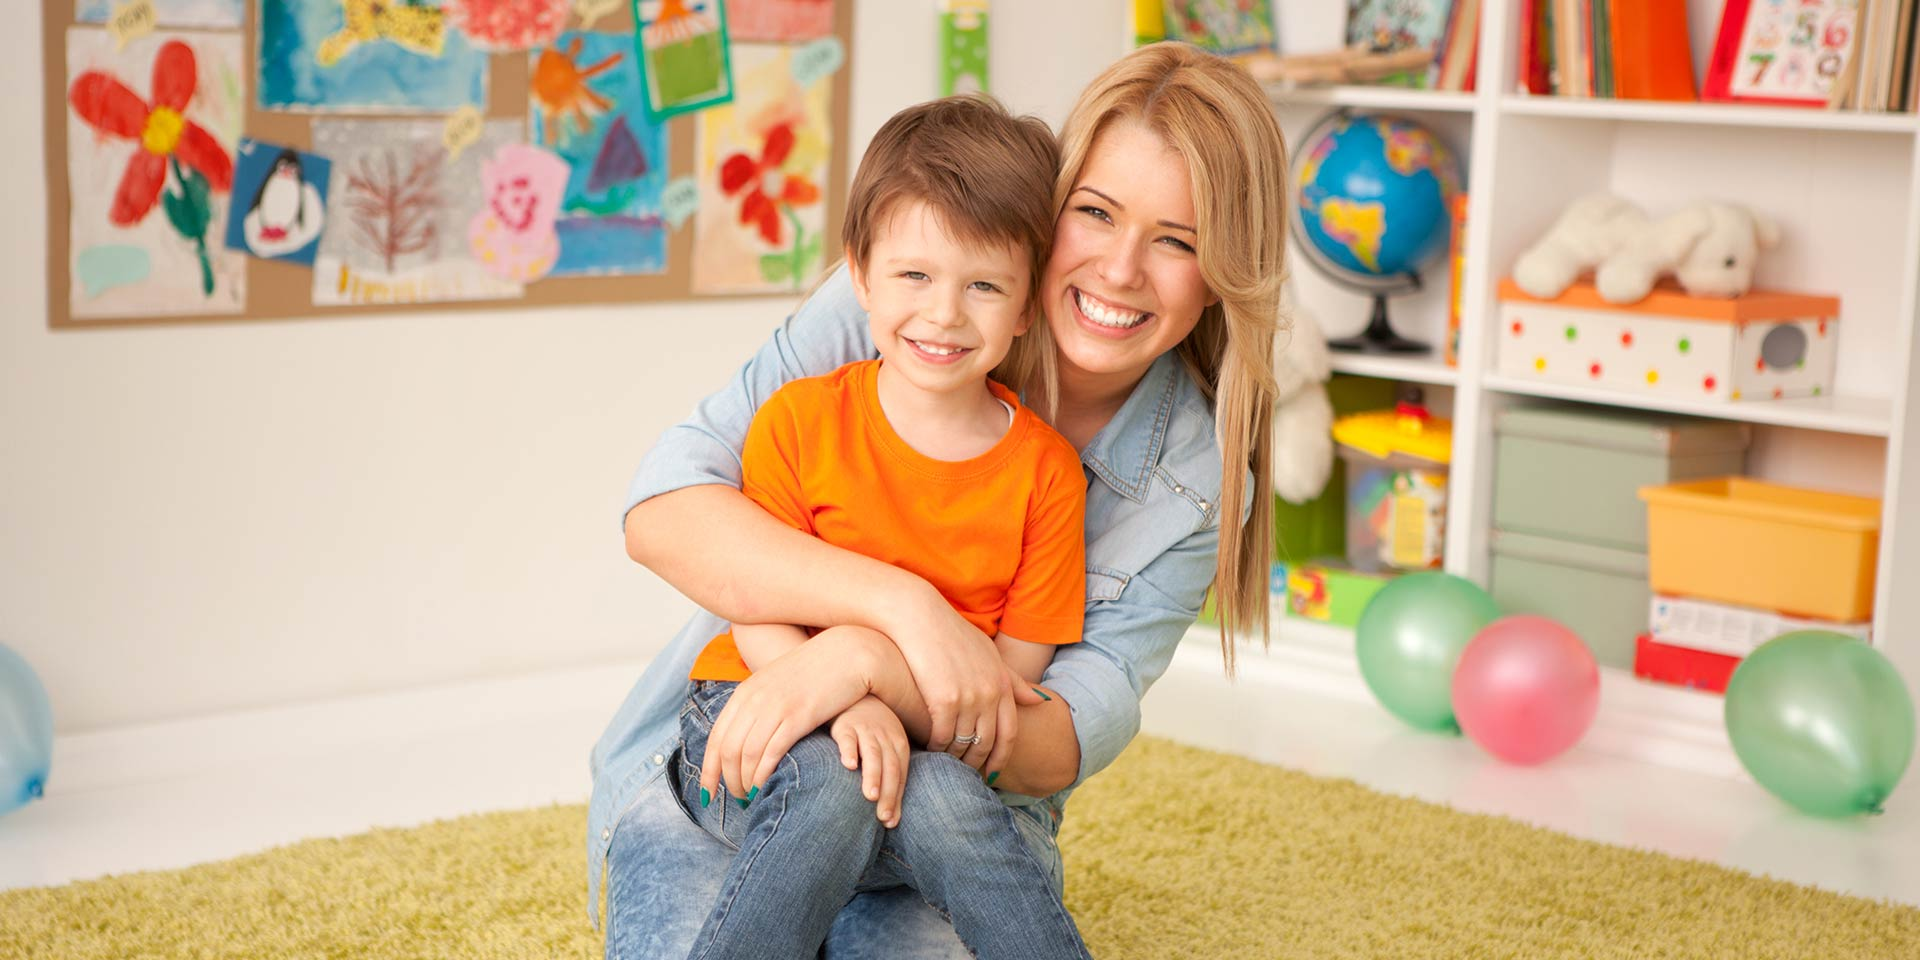 Family Daycare vs Daycare Center: What's the Difference?